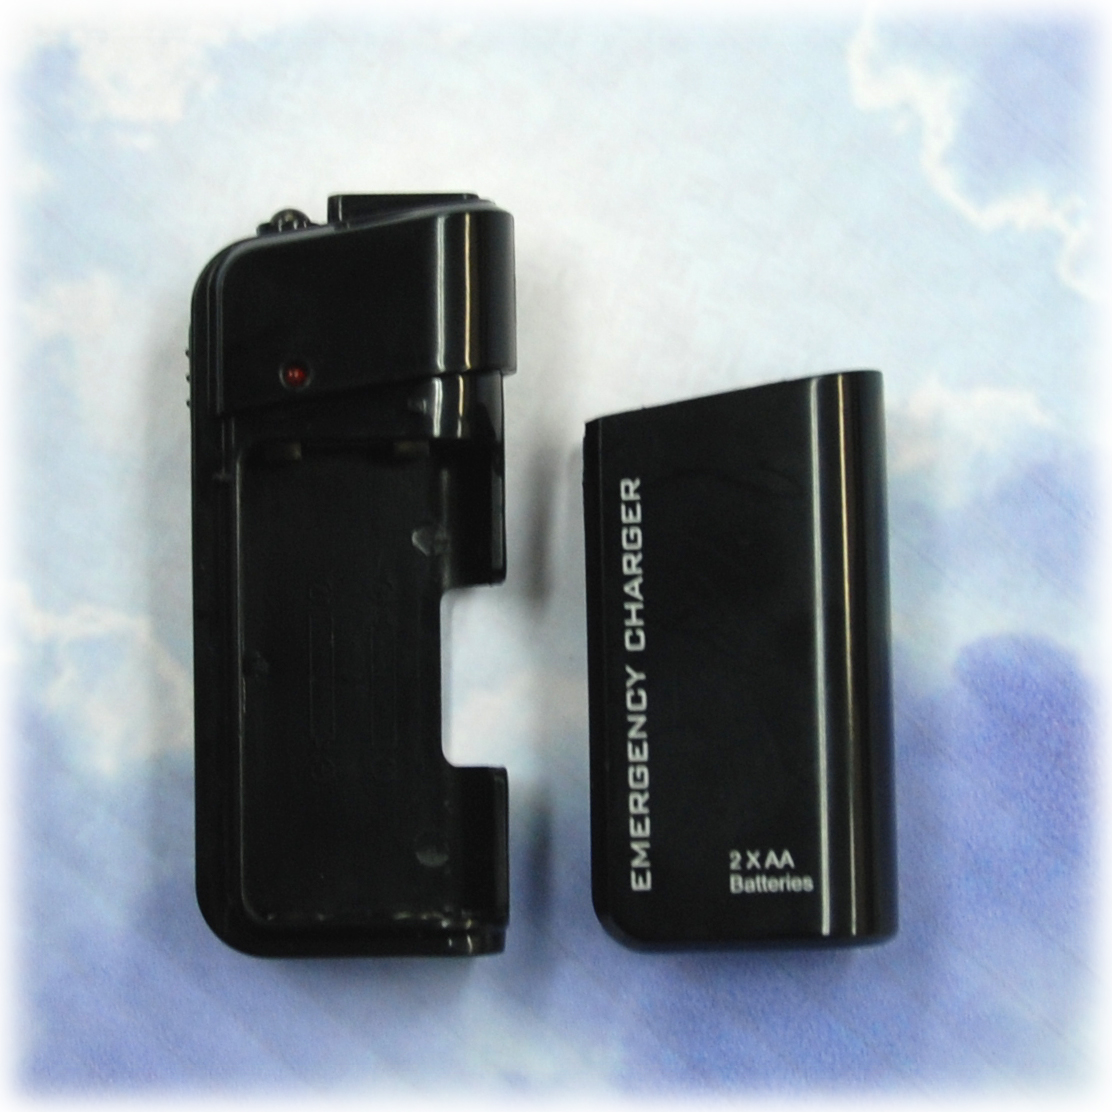 【送料無料】 スマートフォン 電池充電器 EMERGENCY-CHARGER-2X エクスペリアアクロHD au SONY ソニー iPhone4S Disney Mobile DM015K XPERIA SX SO-05D スマートフォンジュニア2 SH-03F AQUOS PHONE SERIE mini SHL24 Xx mini 303SH ARROWS Kiss F-03E